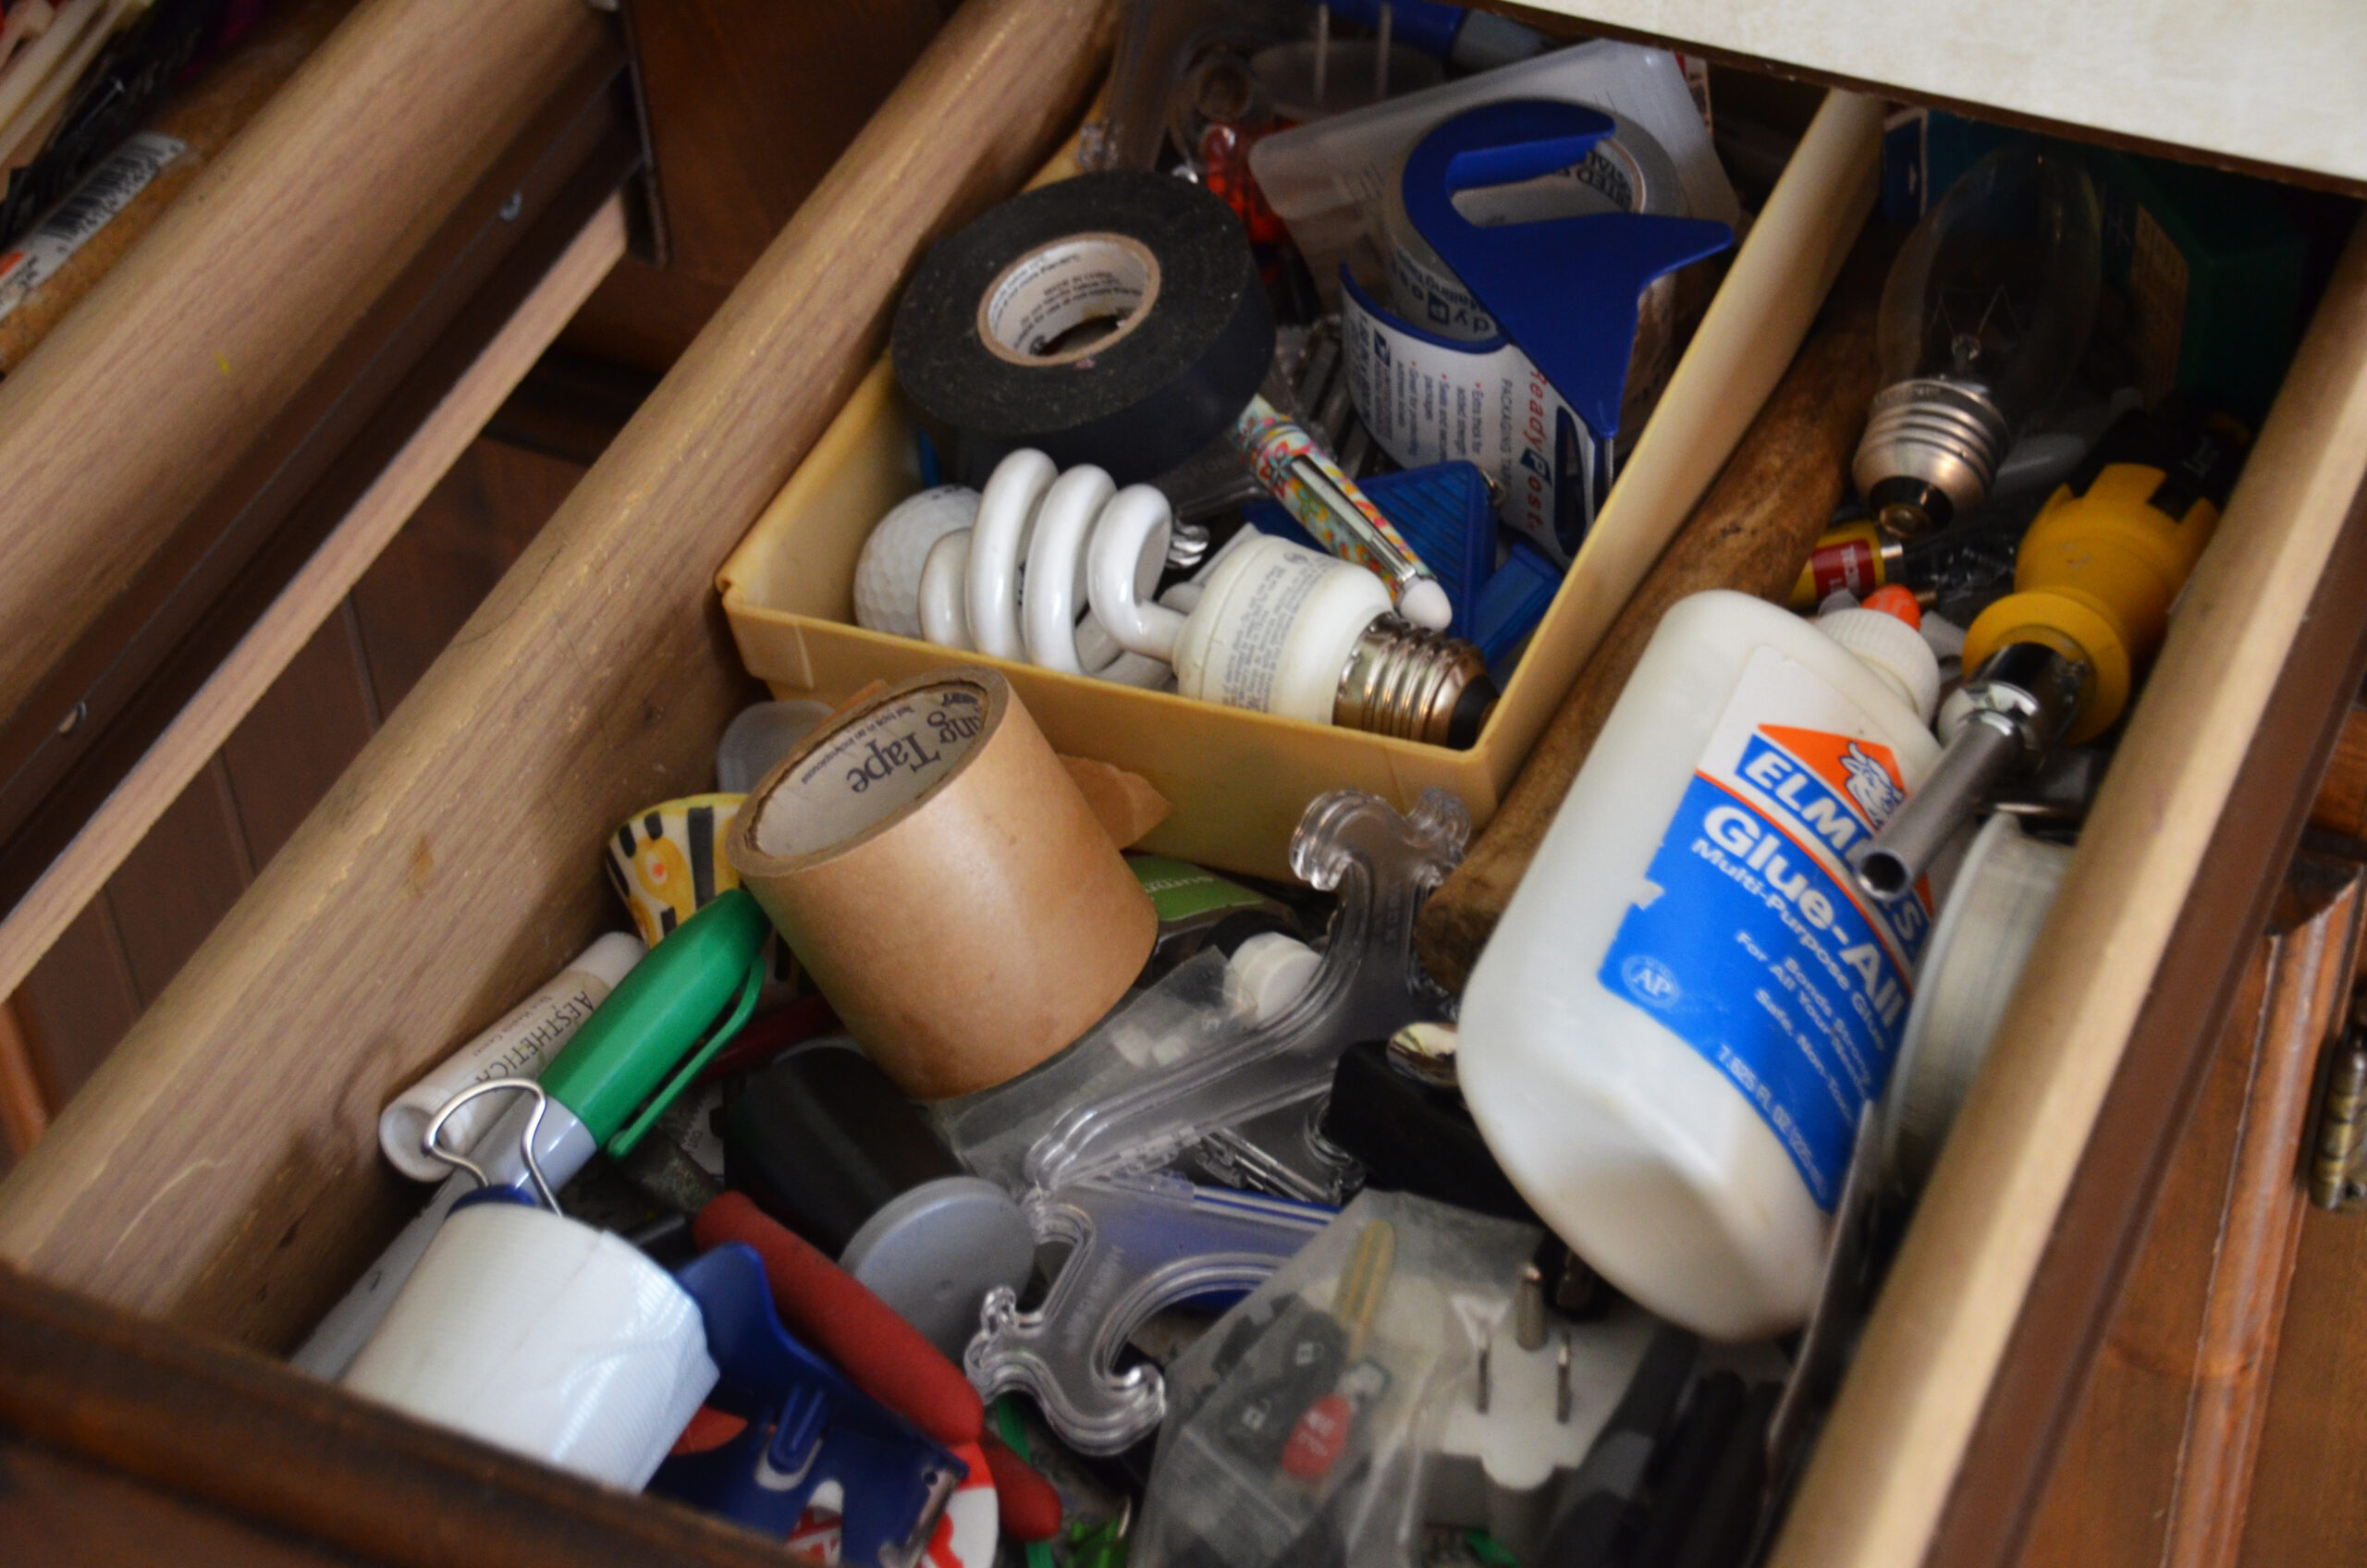 Inside a junk drawer